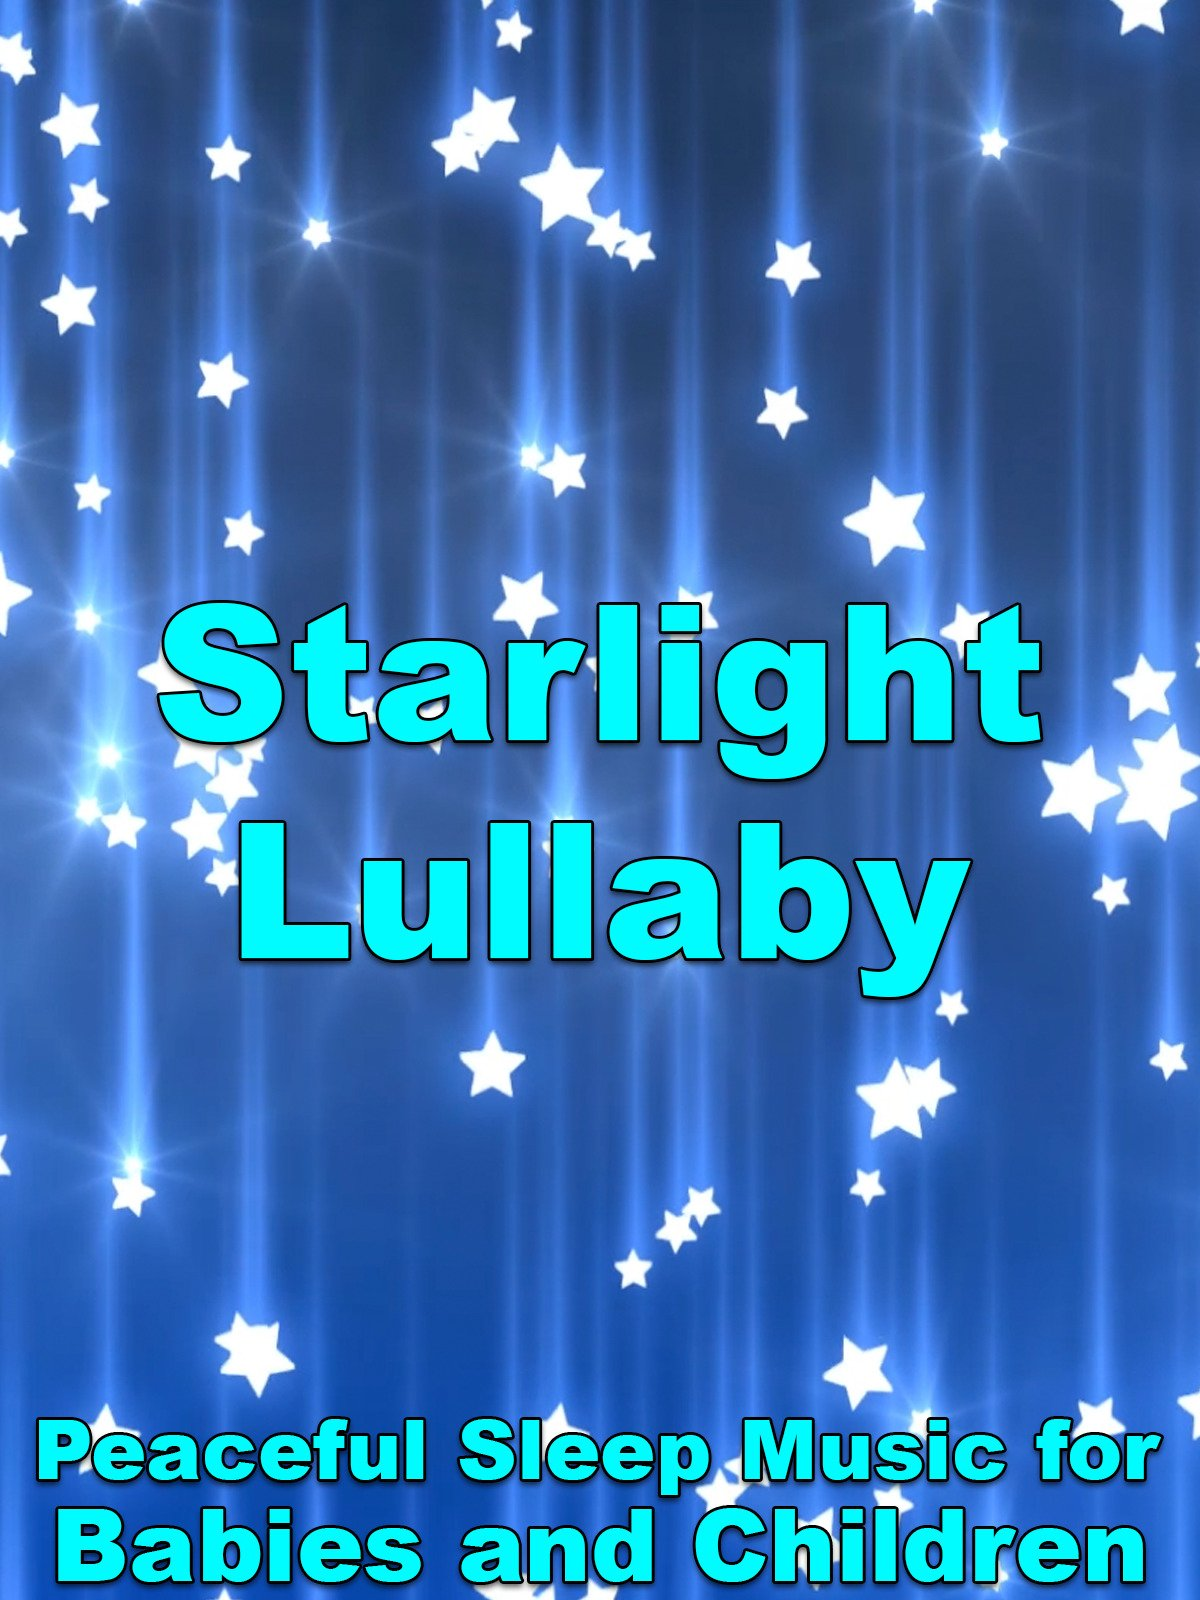 Starlight Lullaby Peaceful Sleep Music for Babies and Children